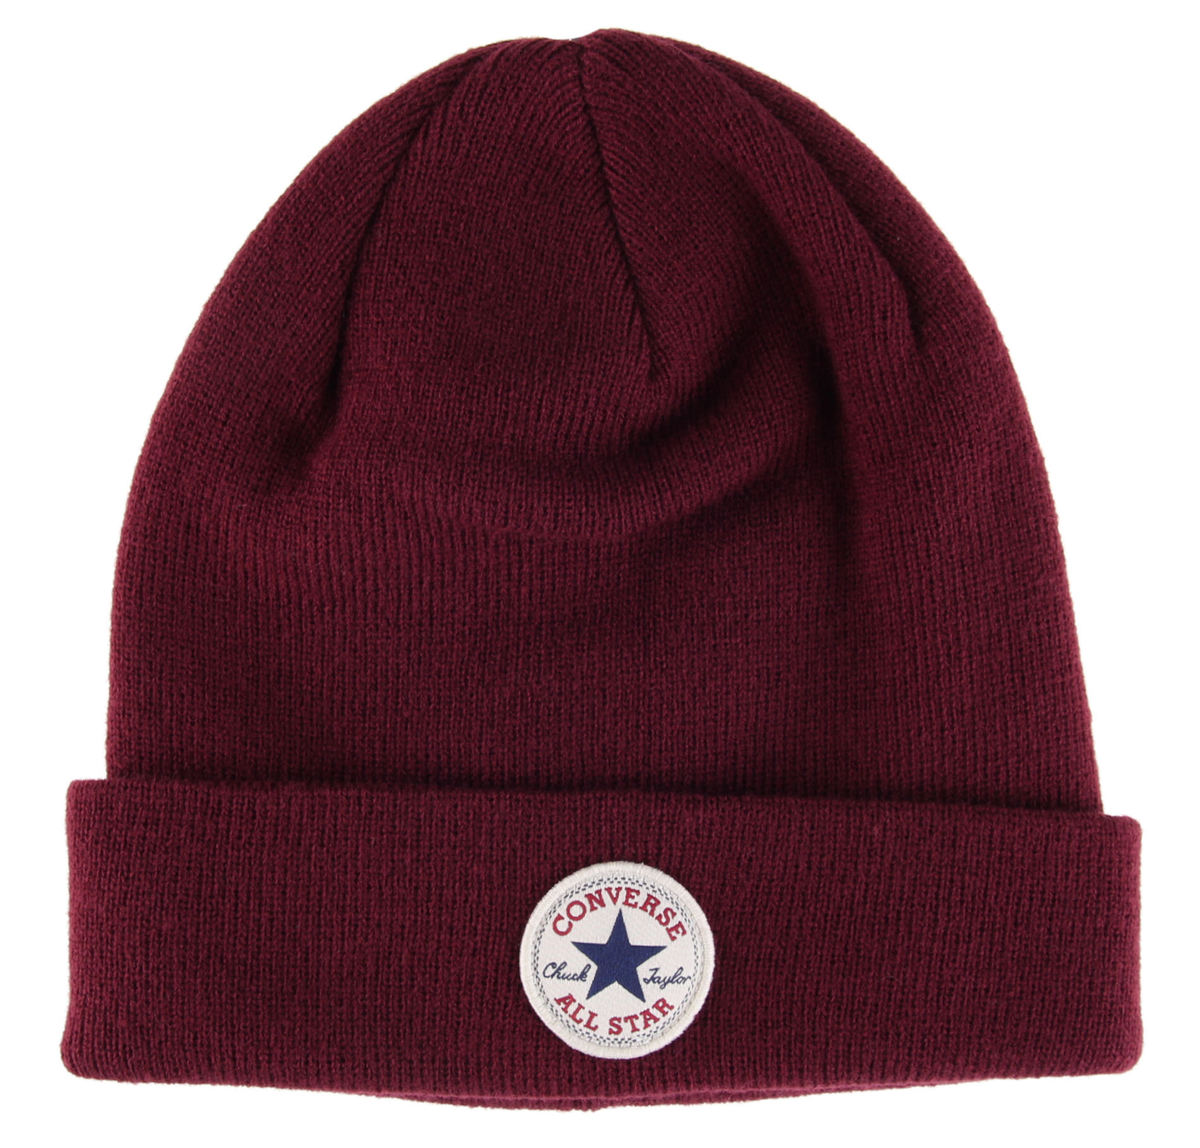 kulich CONVERSE - Core - Deep Bordeaux - 481500